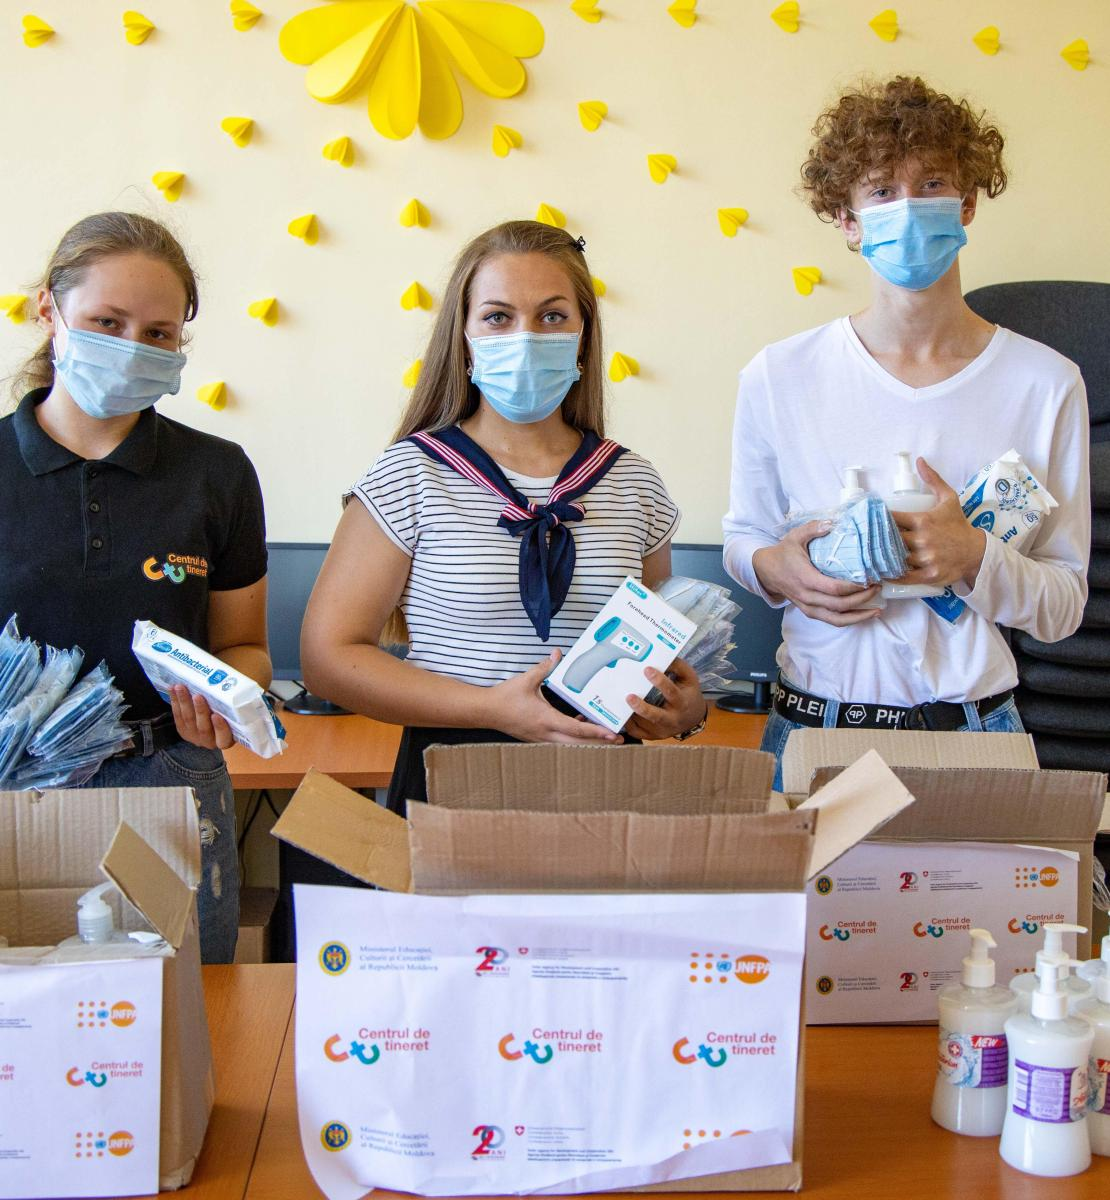 Youth volunteers organize supplies for distribution.